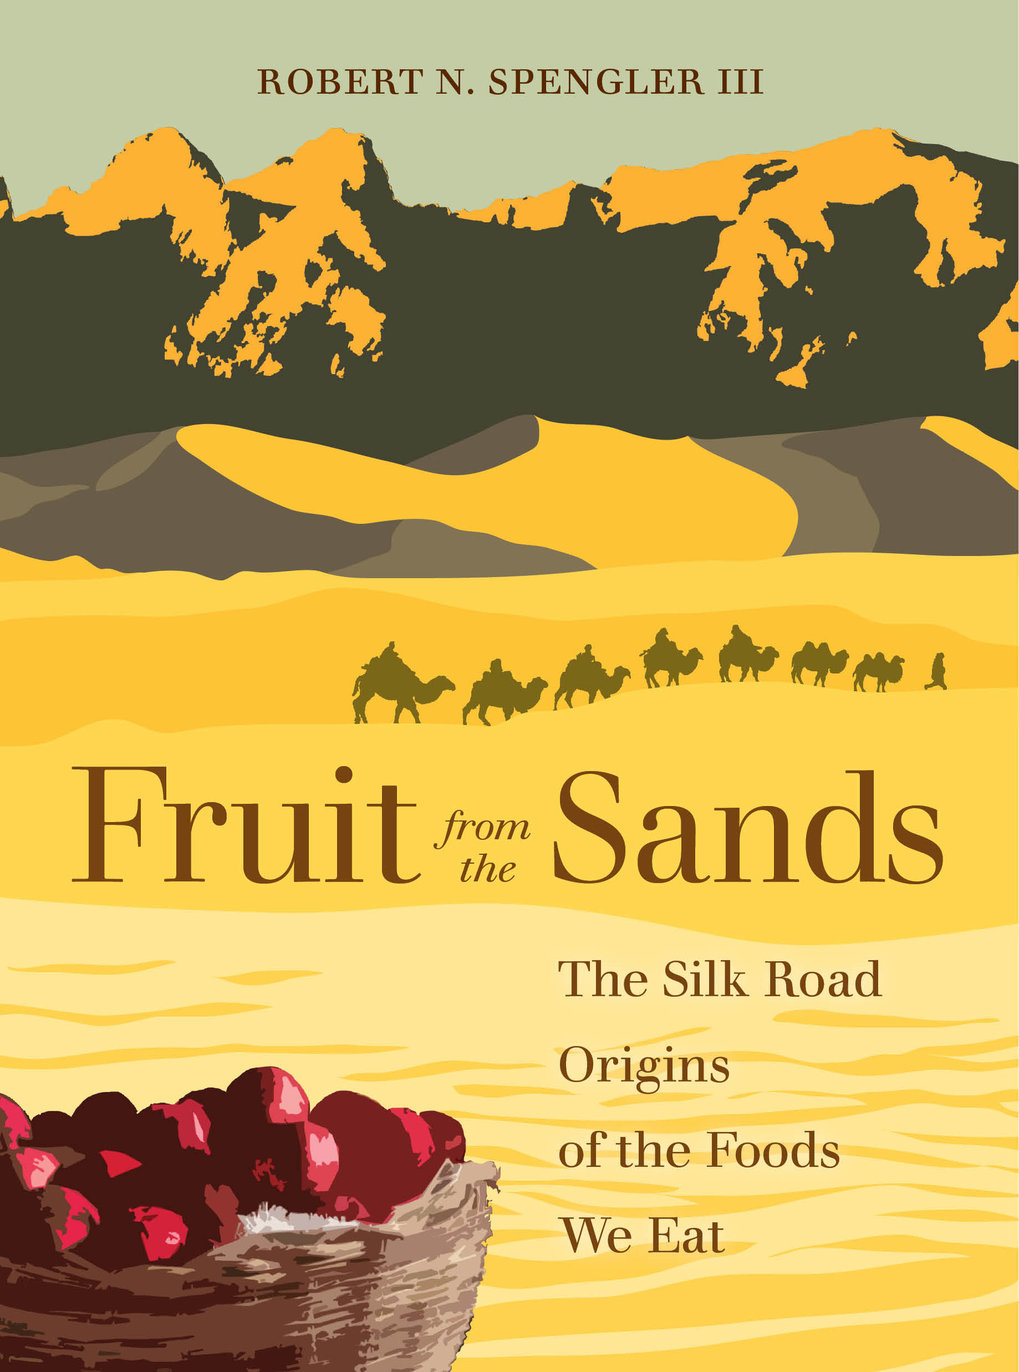 "<p><strong>New book ""Fruit from the Sands: </strong><strong>The Silk Road Origins of the Foods We Eat"" by Dr. Robert N. Spengler III</strong></p>"